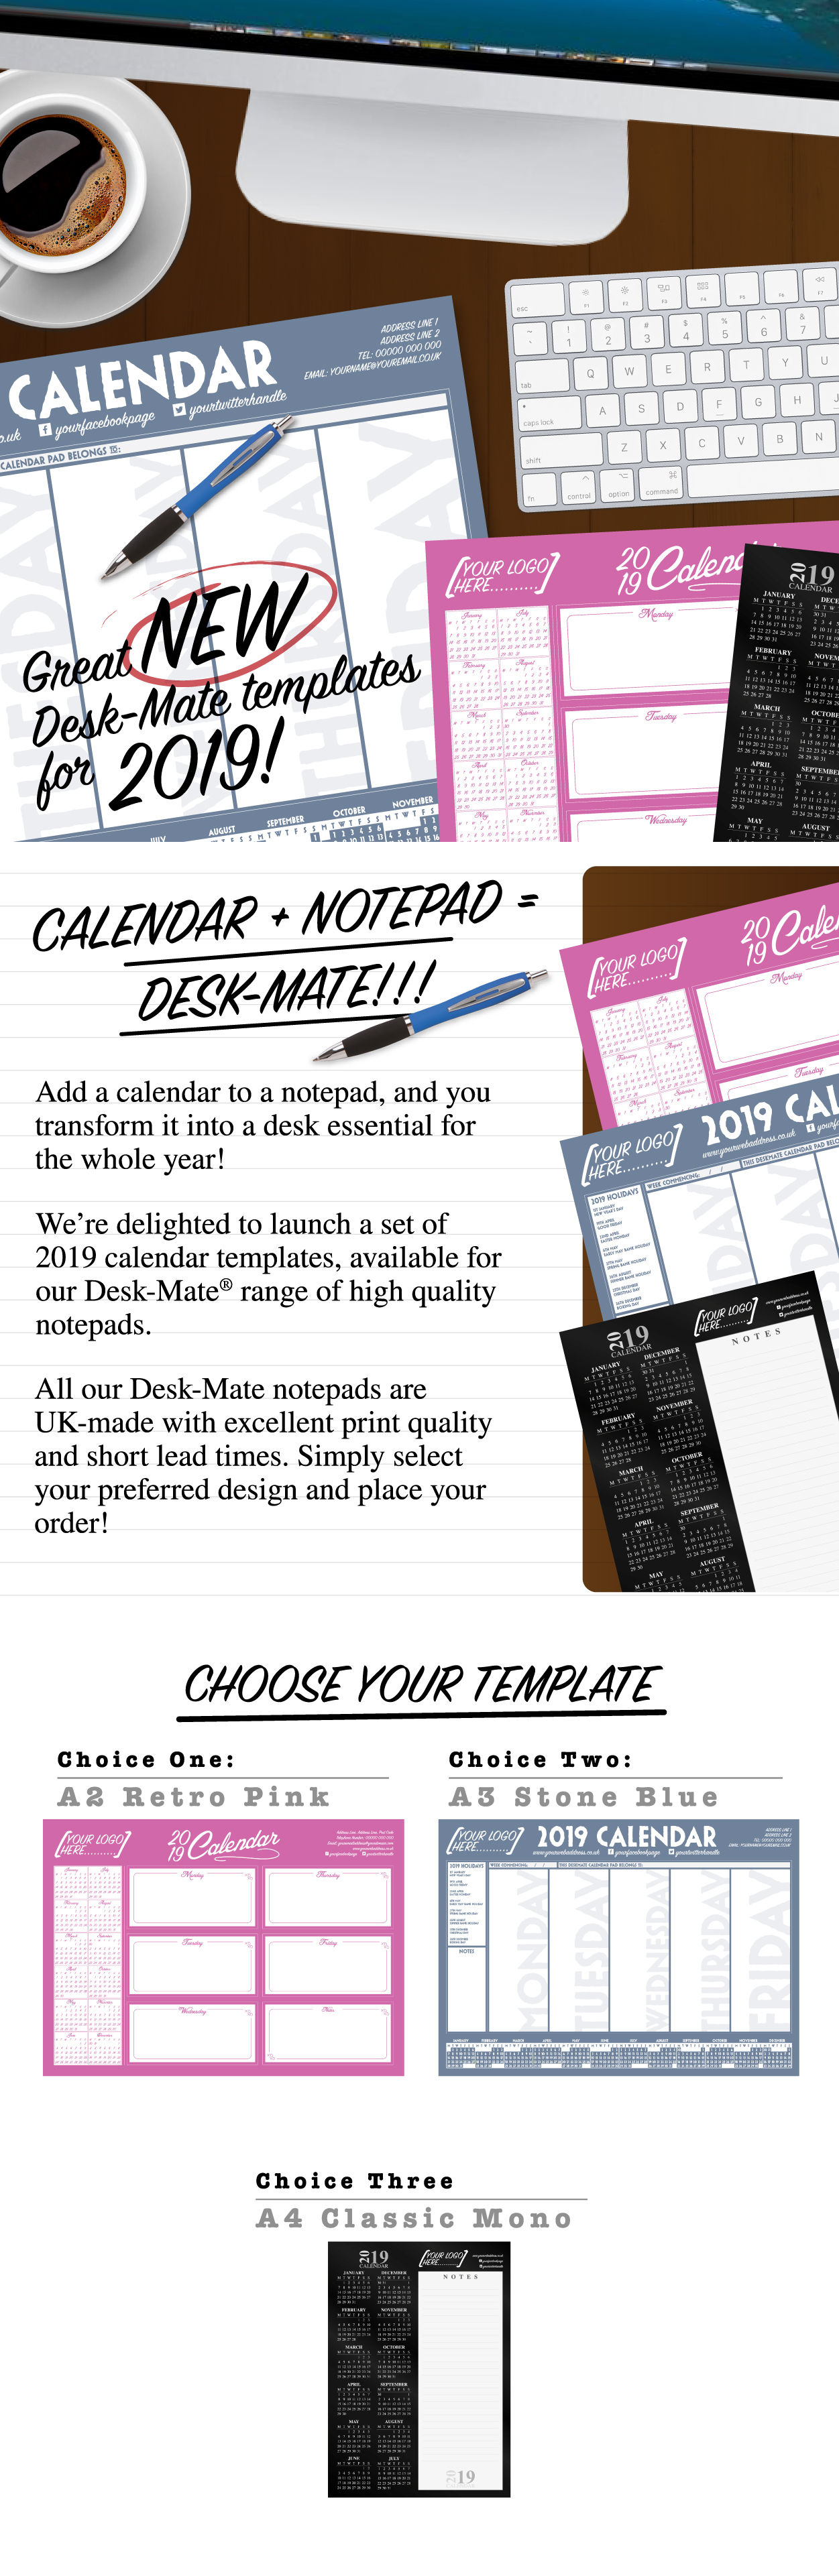 Personalised Desk Mate Note Pads with 2019 Calendars